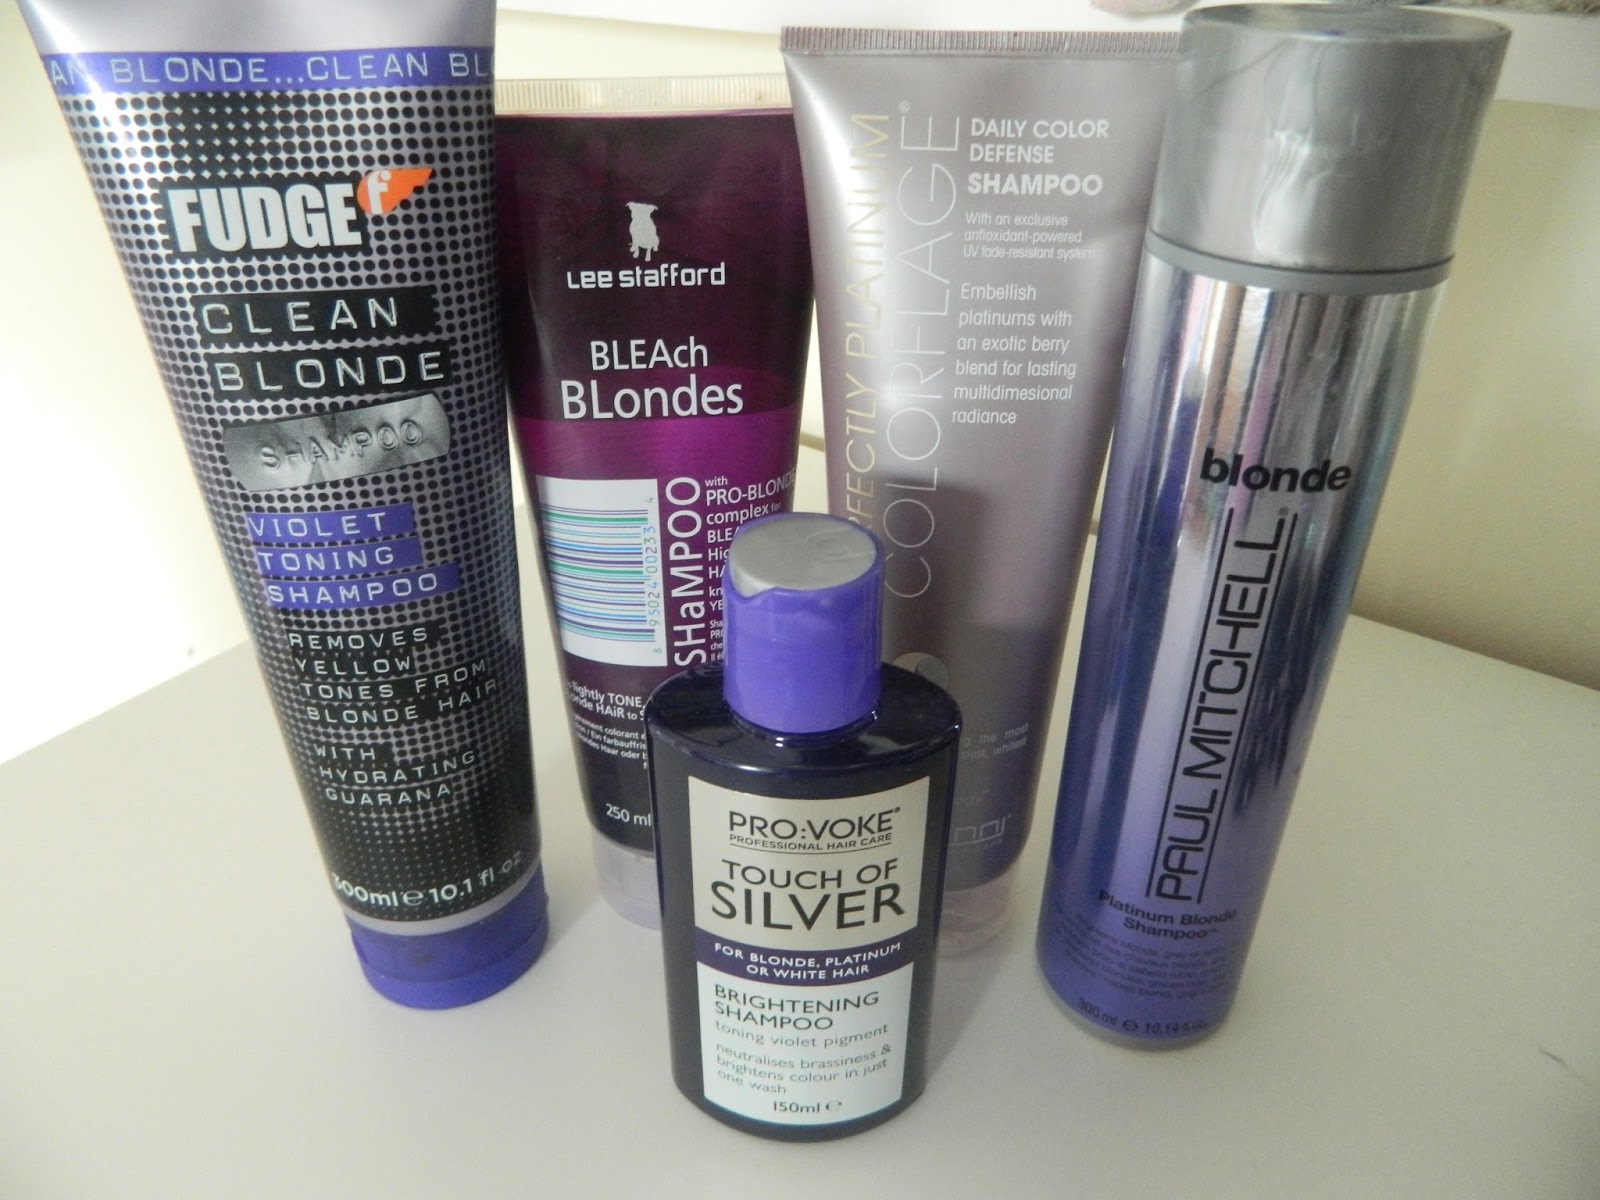 Chloe Smith: Cruelty Free Purple/Silver Shampoos